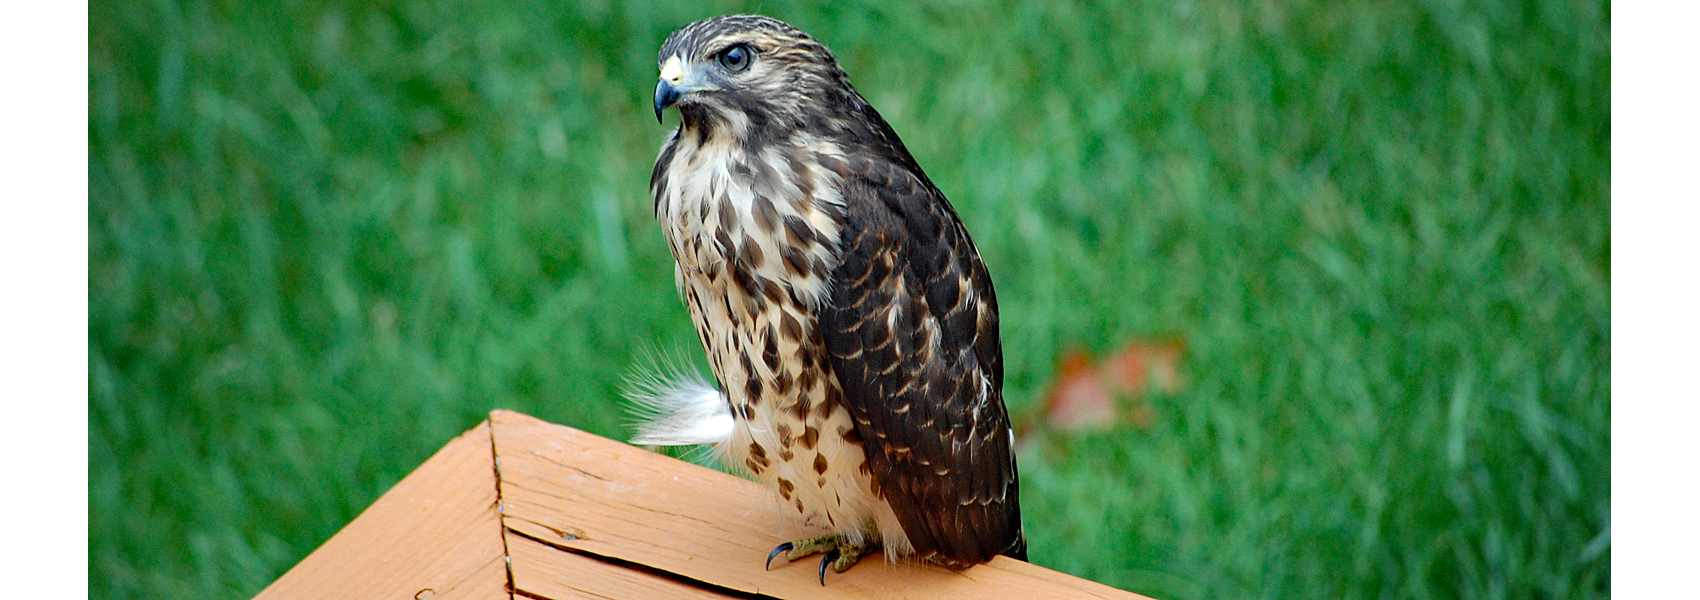 A Cooper's hawk sits on a deck rail